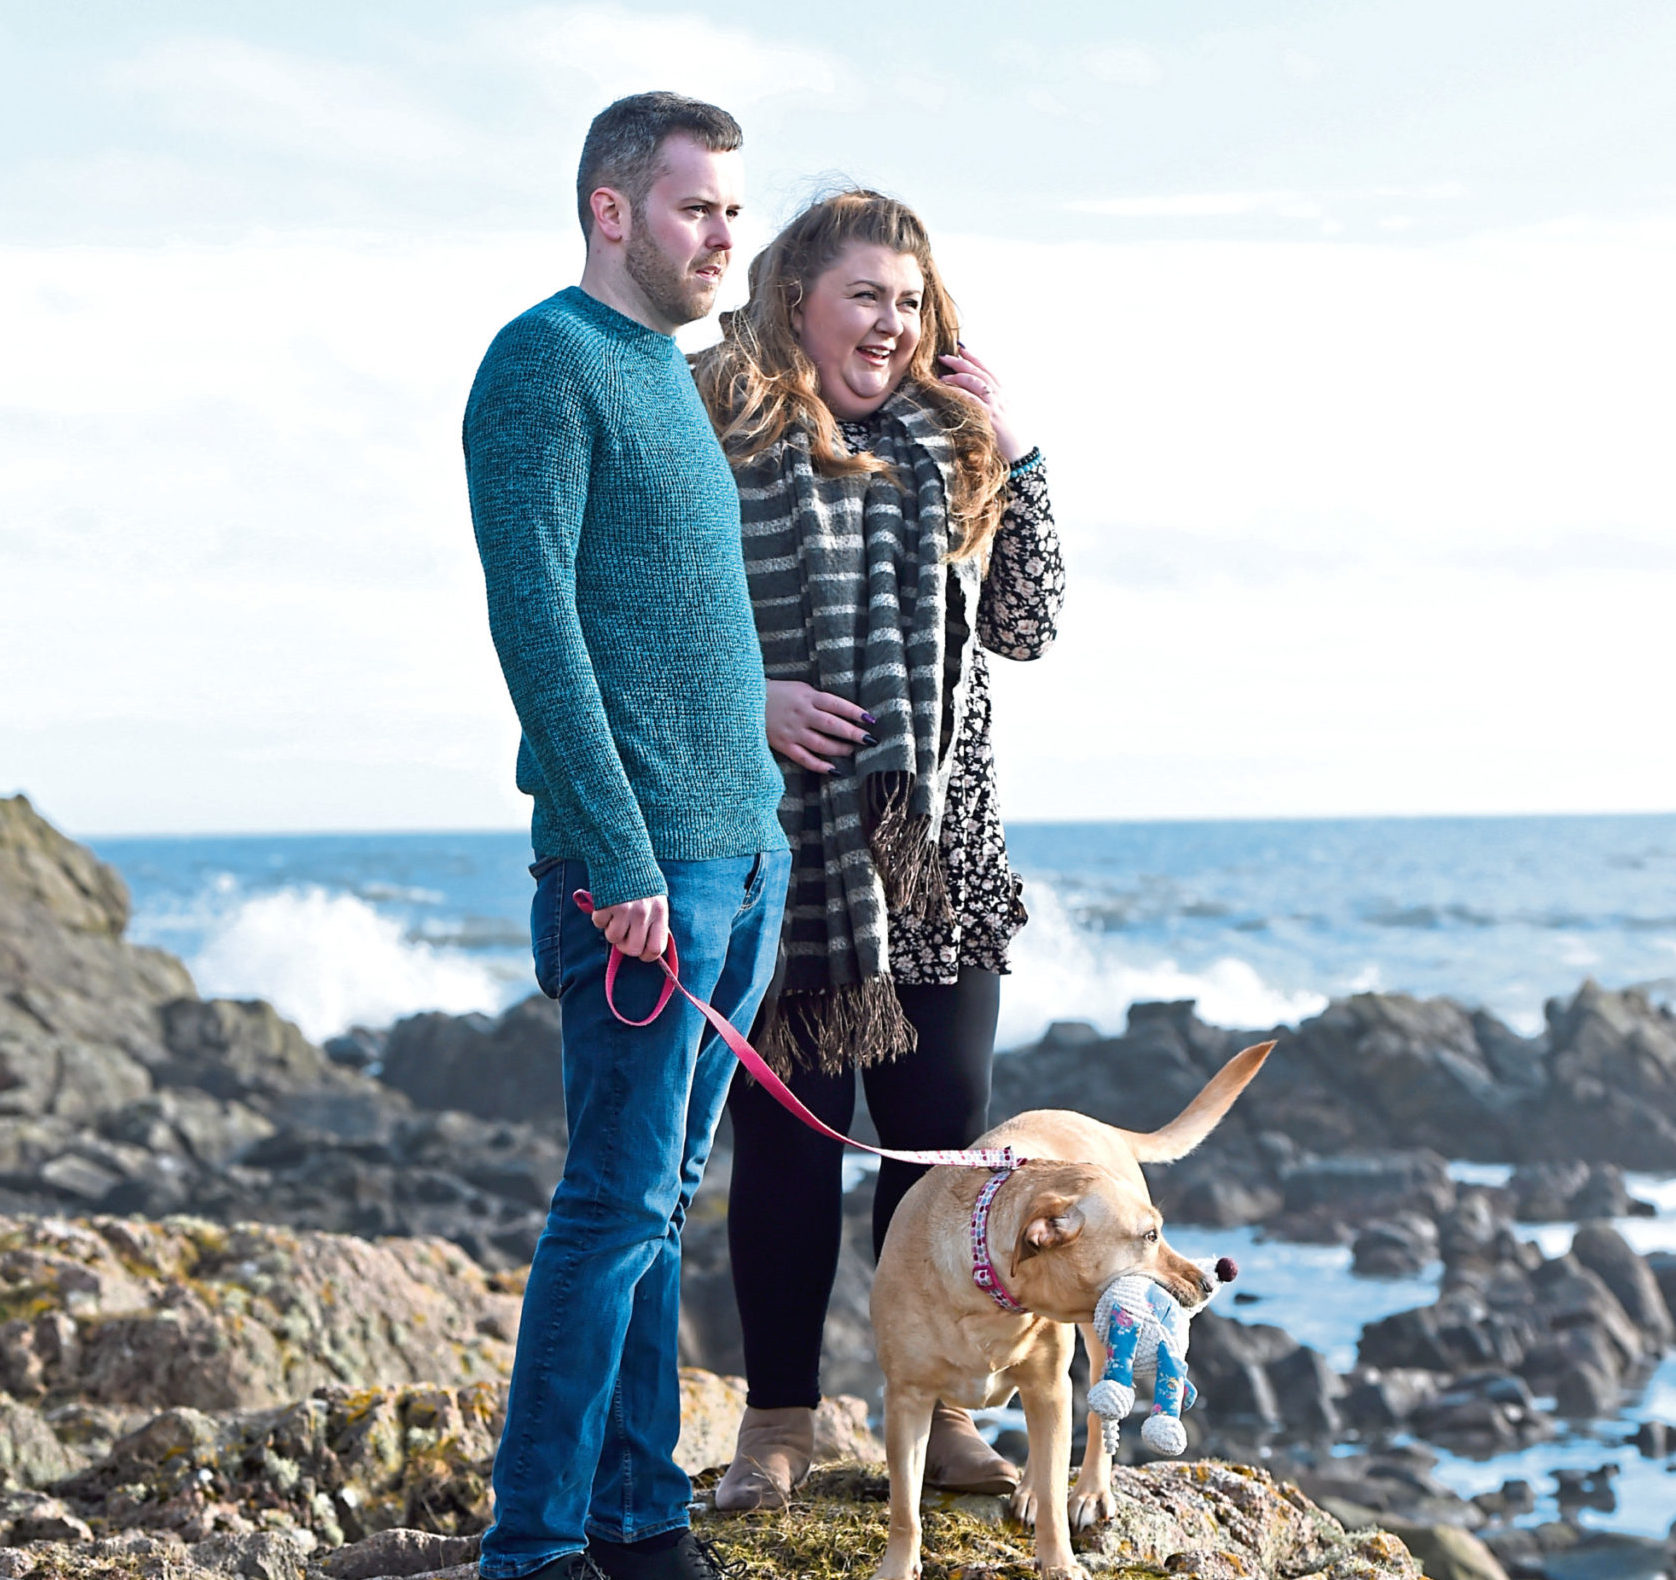 Victoria MacDonald and Scott Ross who run a very successful  blog and Instagram page walking their dog Callie Picture by Paul Glendell